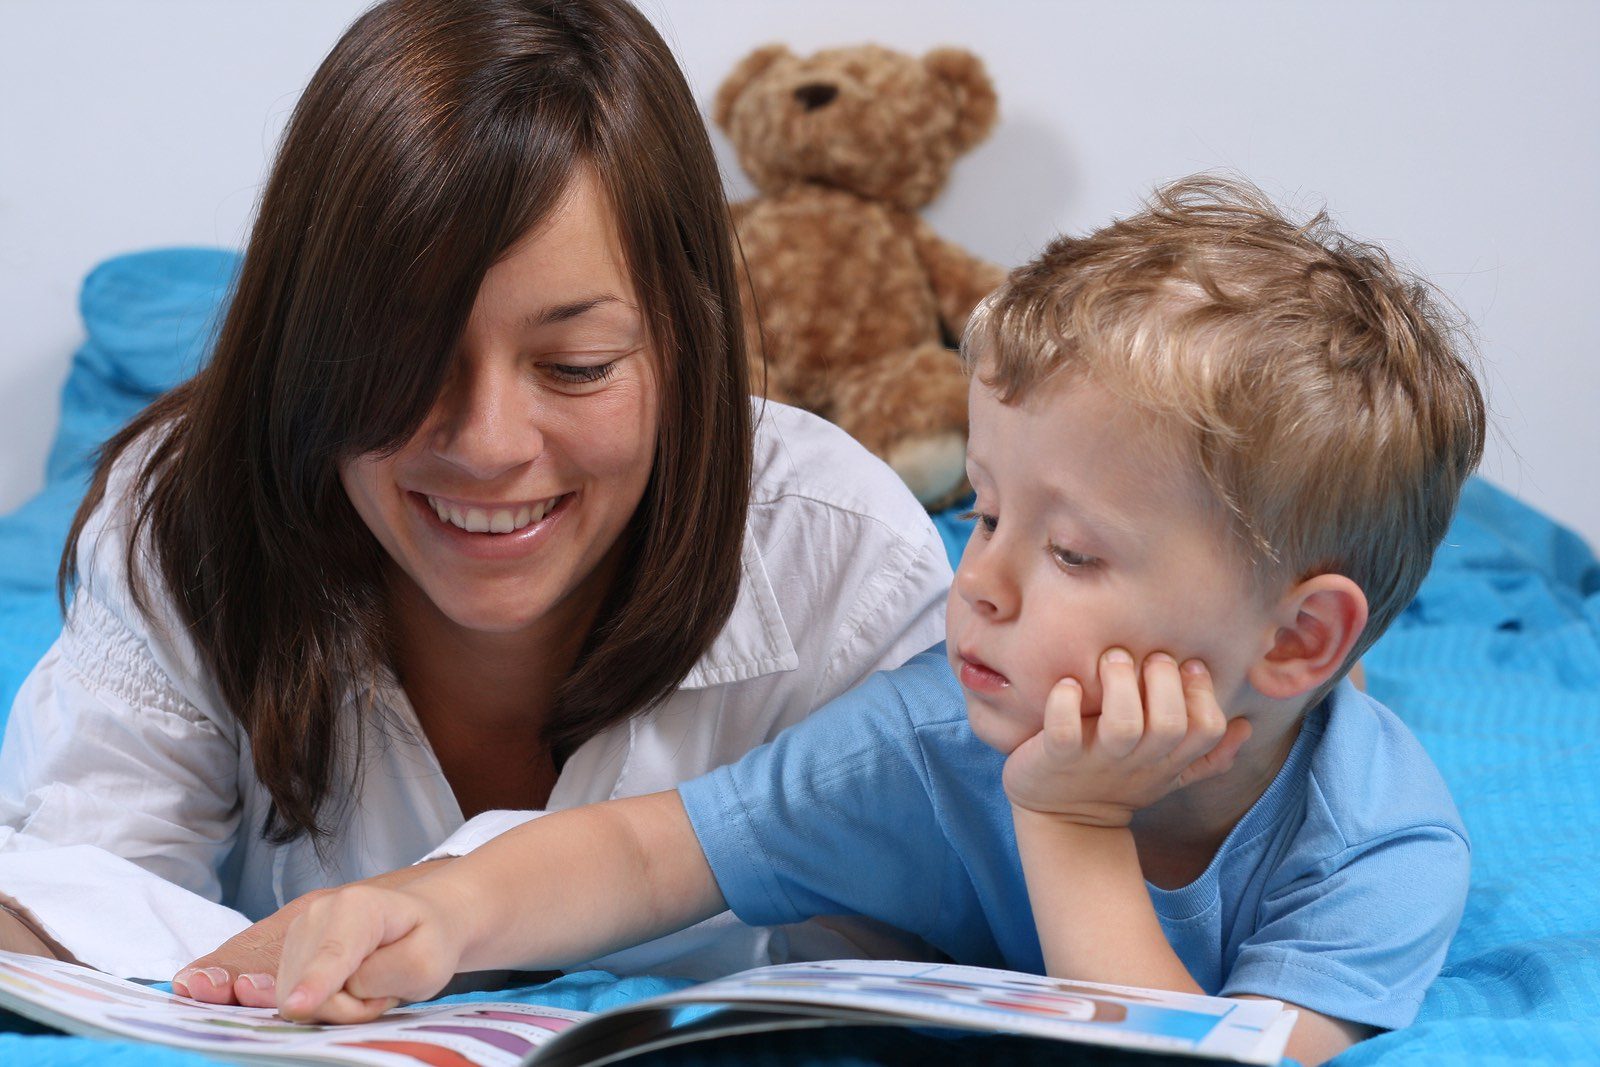 child bedtime sleep speech parent reading children read mother infants quality study academically should know parents rhythm learning theschoolrun story